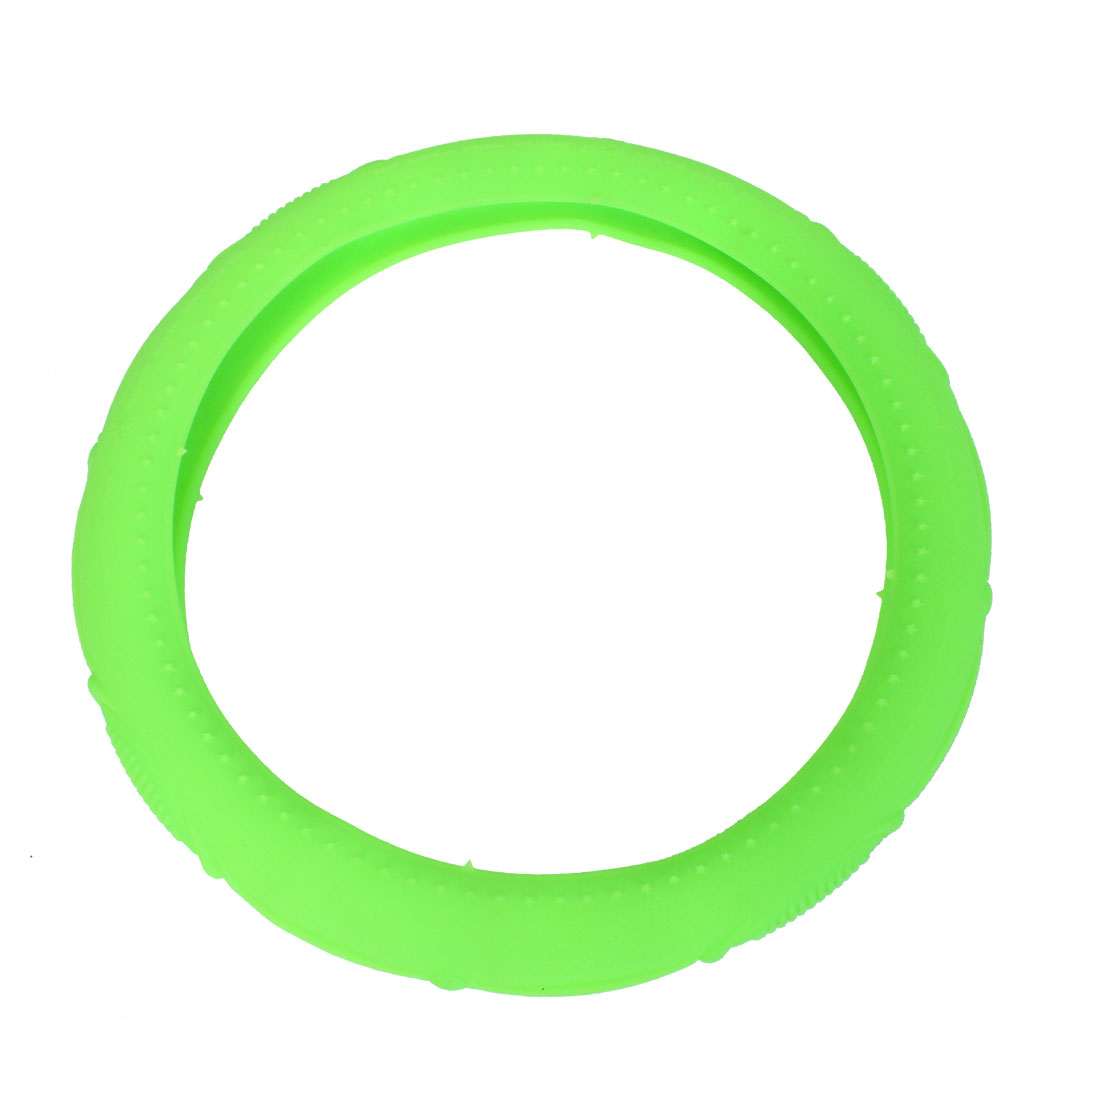 33cm-46cm Dia Nonslip Odorless Silicone Steering Wheel Cover Green for Truck